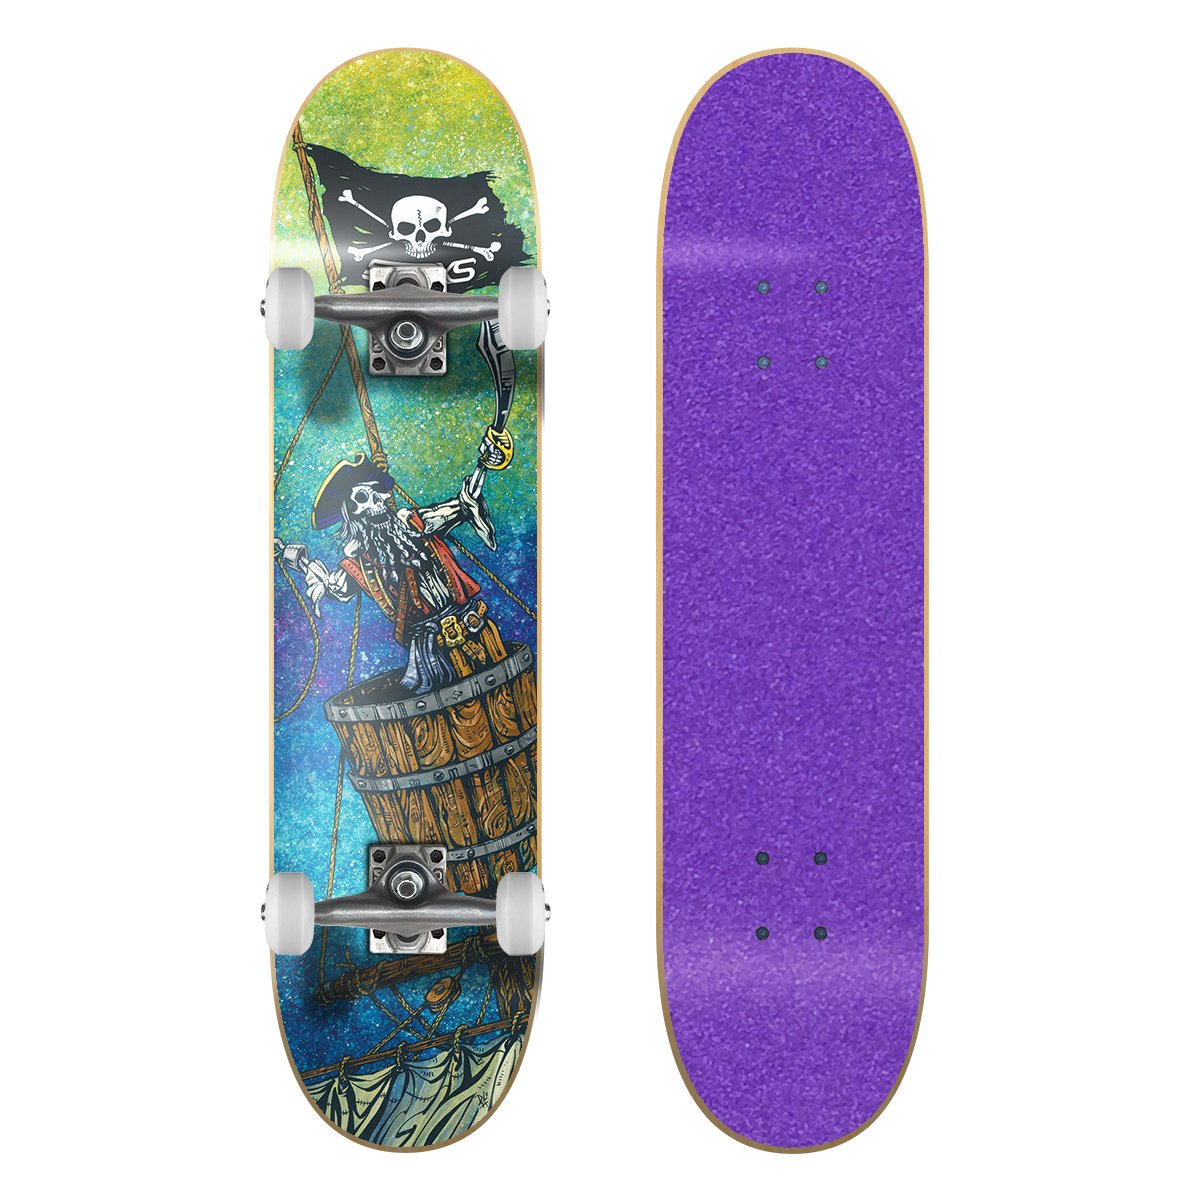 2019激安通販 SkateXS ビギナー 海賊 ストリート/ Tape スケートボード 5-7)|Purple B01NBGNO8O 7.0 x 28 (Ages 5-7)|Purple Grip Tape/ White Wheels Purple Grip Tape/ White Wheels 7.0 x 28 (Ages 5-7), リブレイン:a93fa50f --- a0267596.xsph.ru